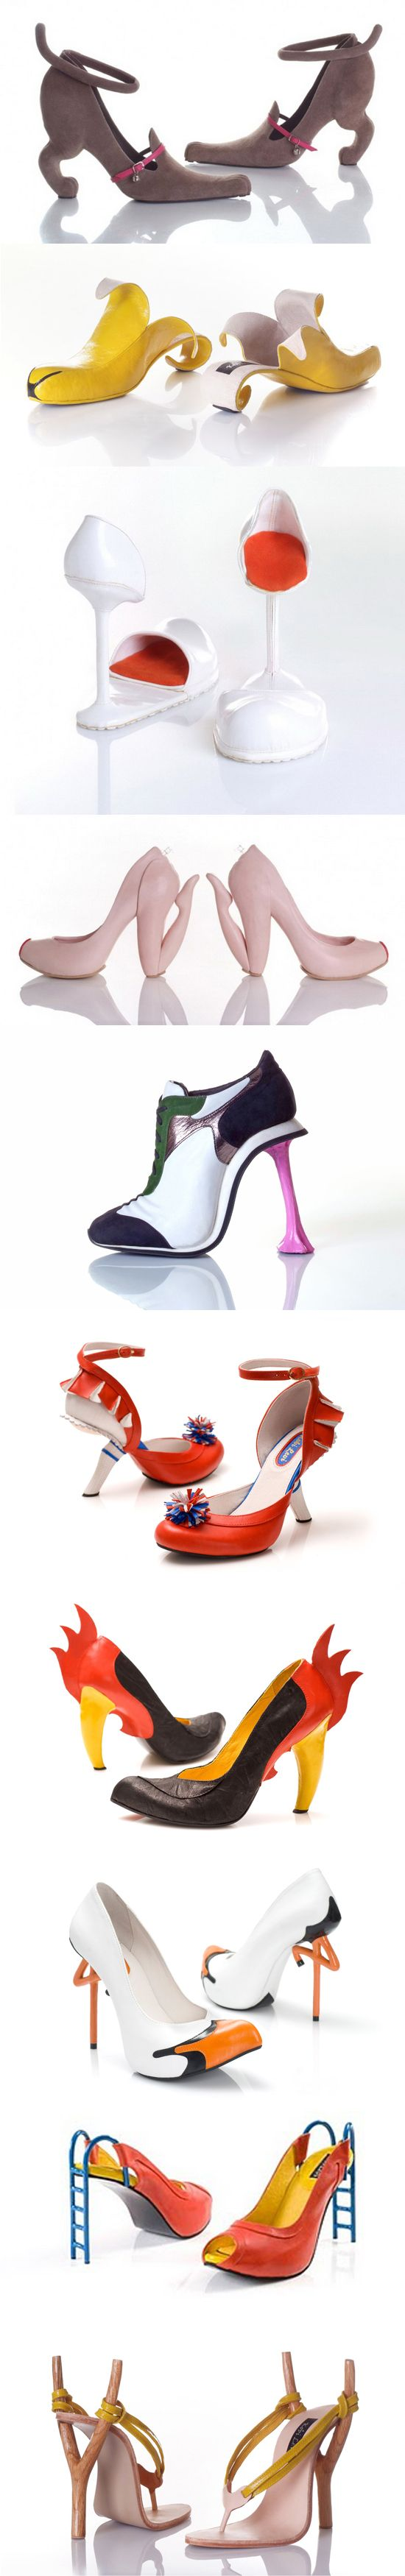 Weird. 10 amazing shoes and footwear designed by Kobi Levi. The shoes are named after the themes that inspired the artist in creating them: Miao, Banana, Tulip, Blow, Chewing gum, Cheerleader red, Rooster black, Stork, Slide, Sling Shot.